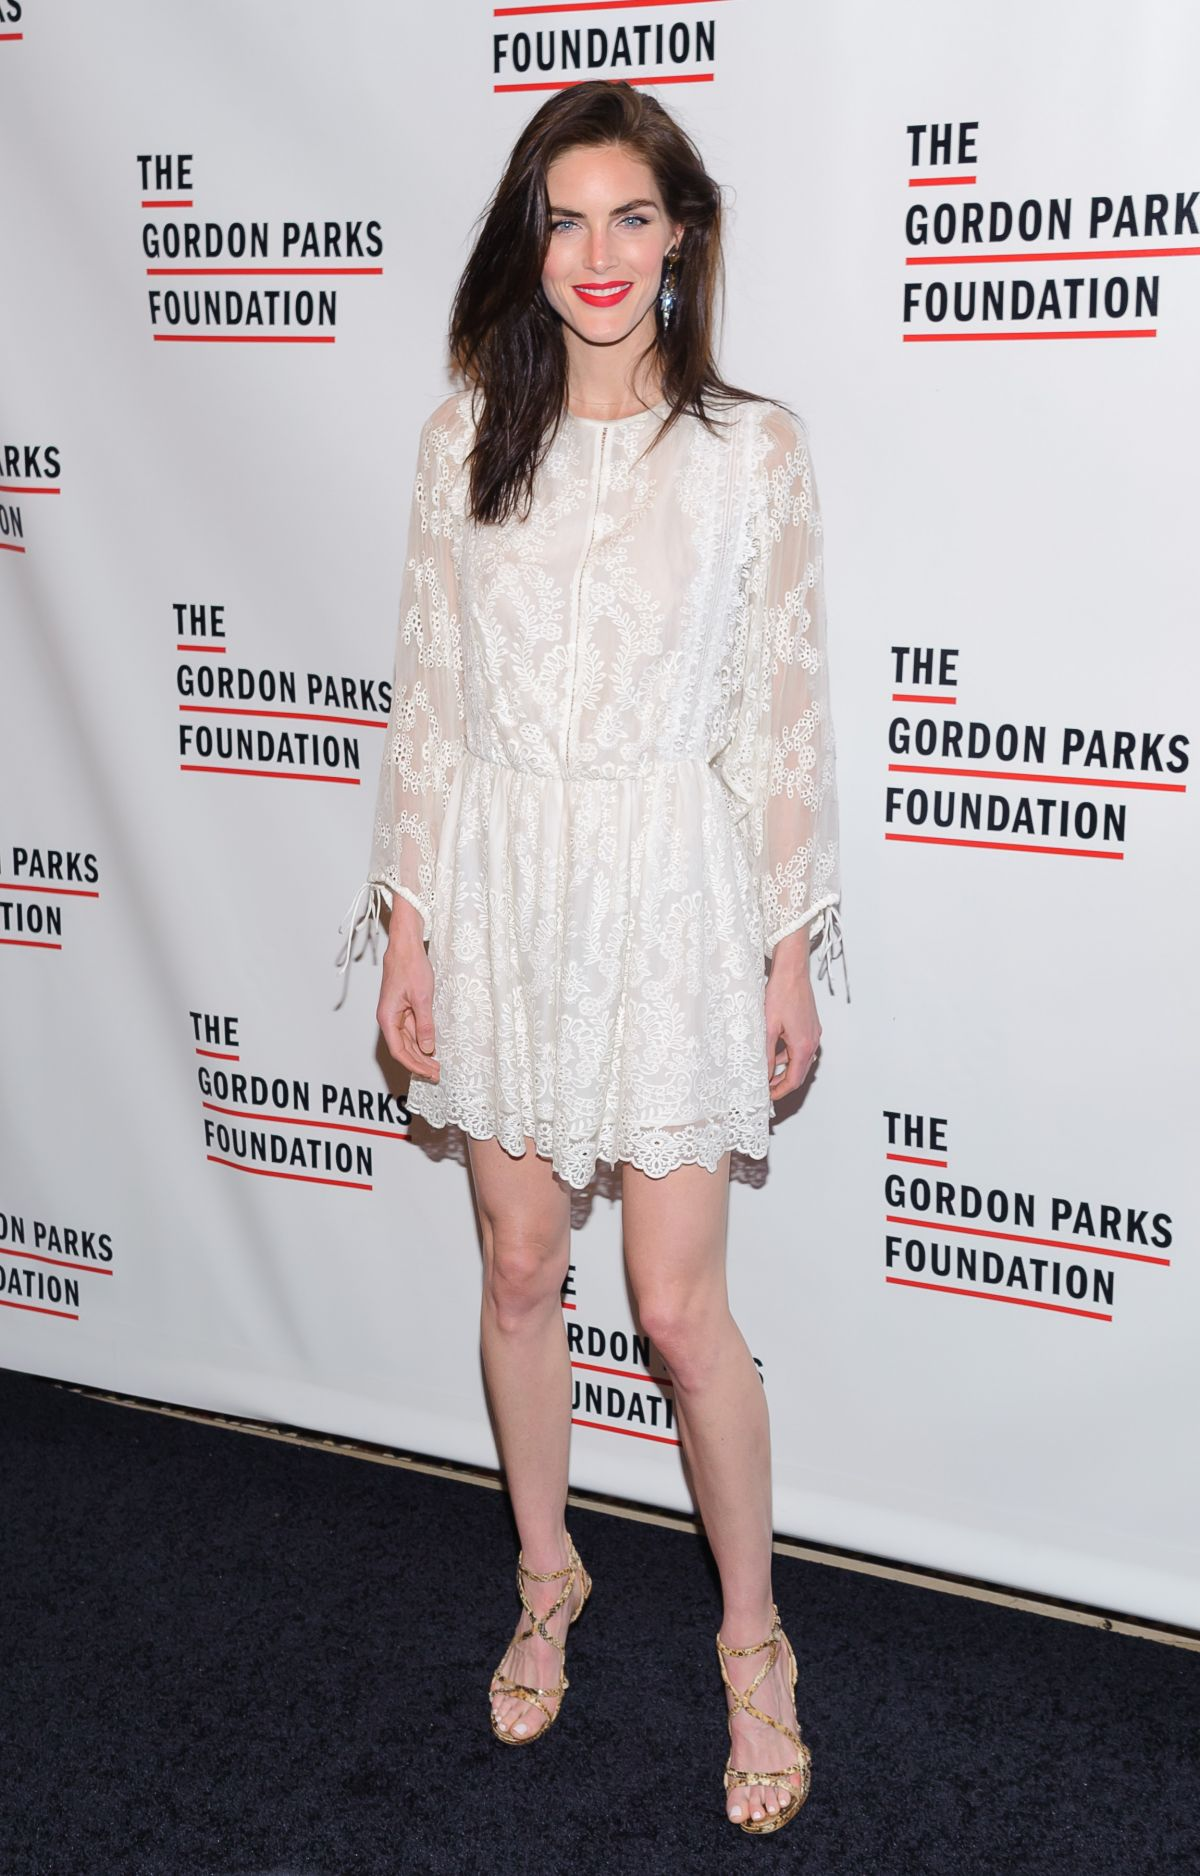 HILARY RHODA at 2016 Gordon Parks Foundation Awards Dinner in New York 05/24/2016